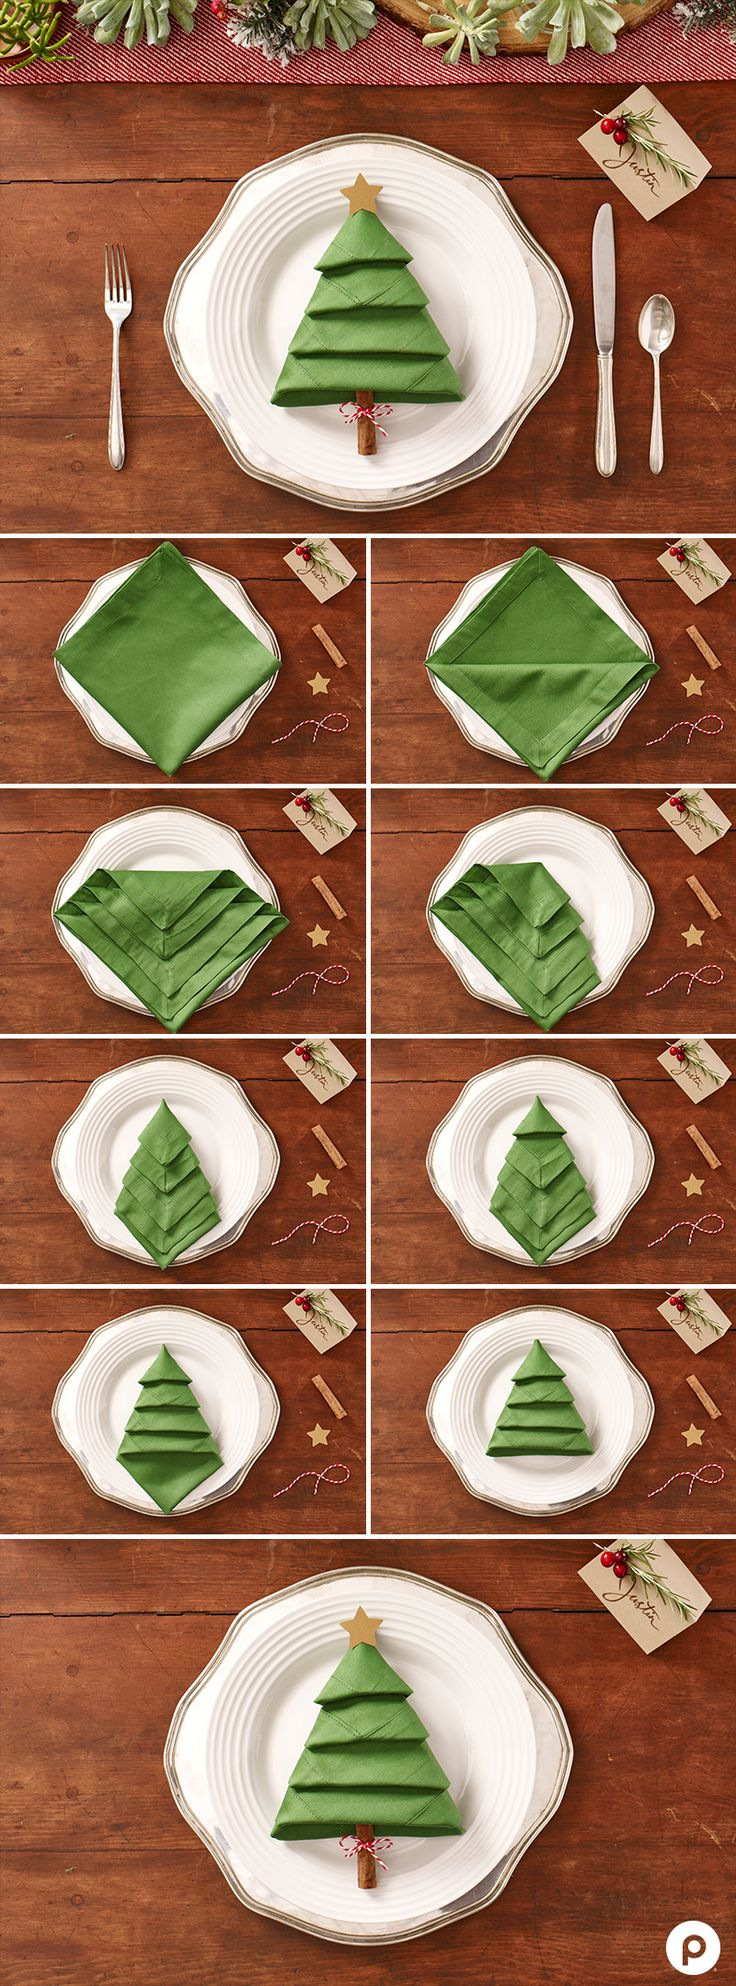 best ideas about christmas napkin folding try paper and tie a set of utensils kitvhen twine or raffia and tuck the spoon end into the folded napkin to resemble a trunk christmas tree